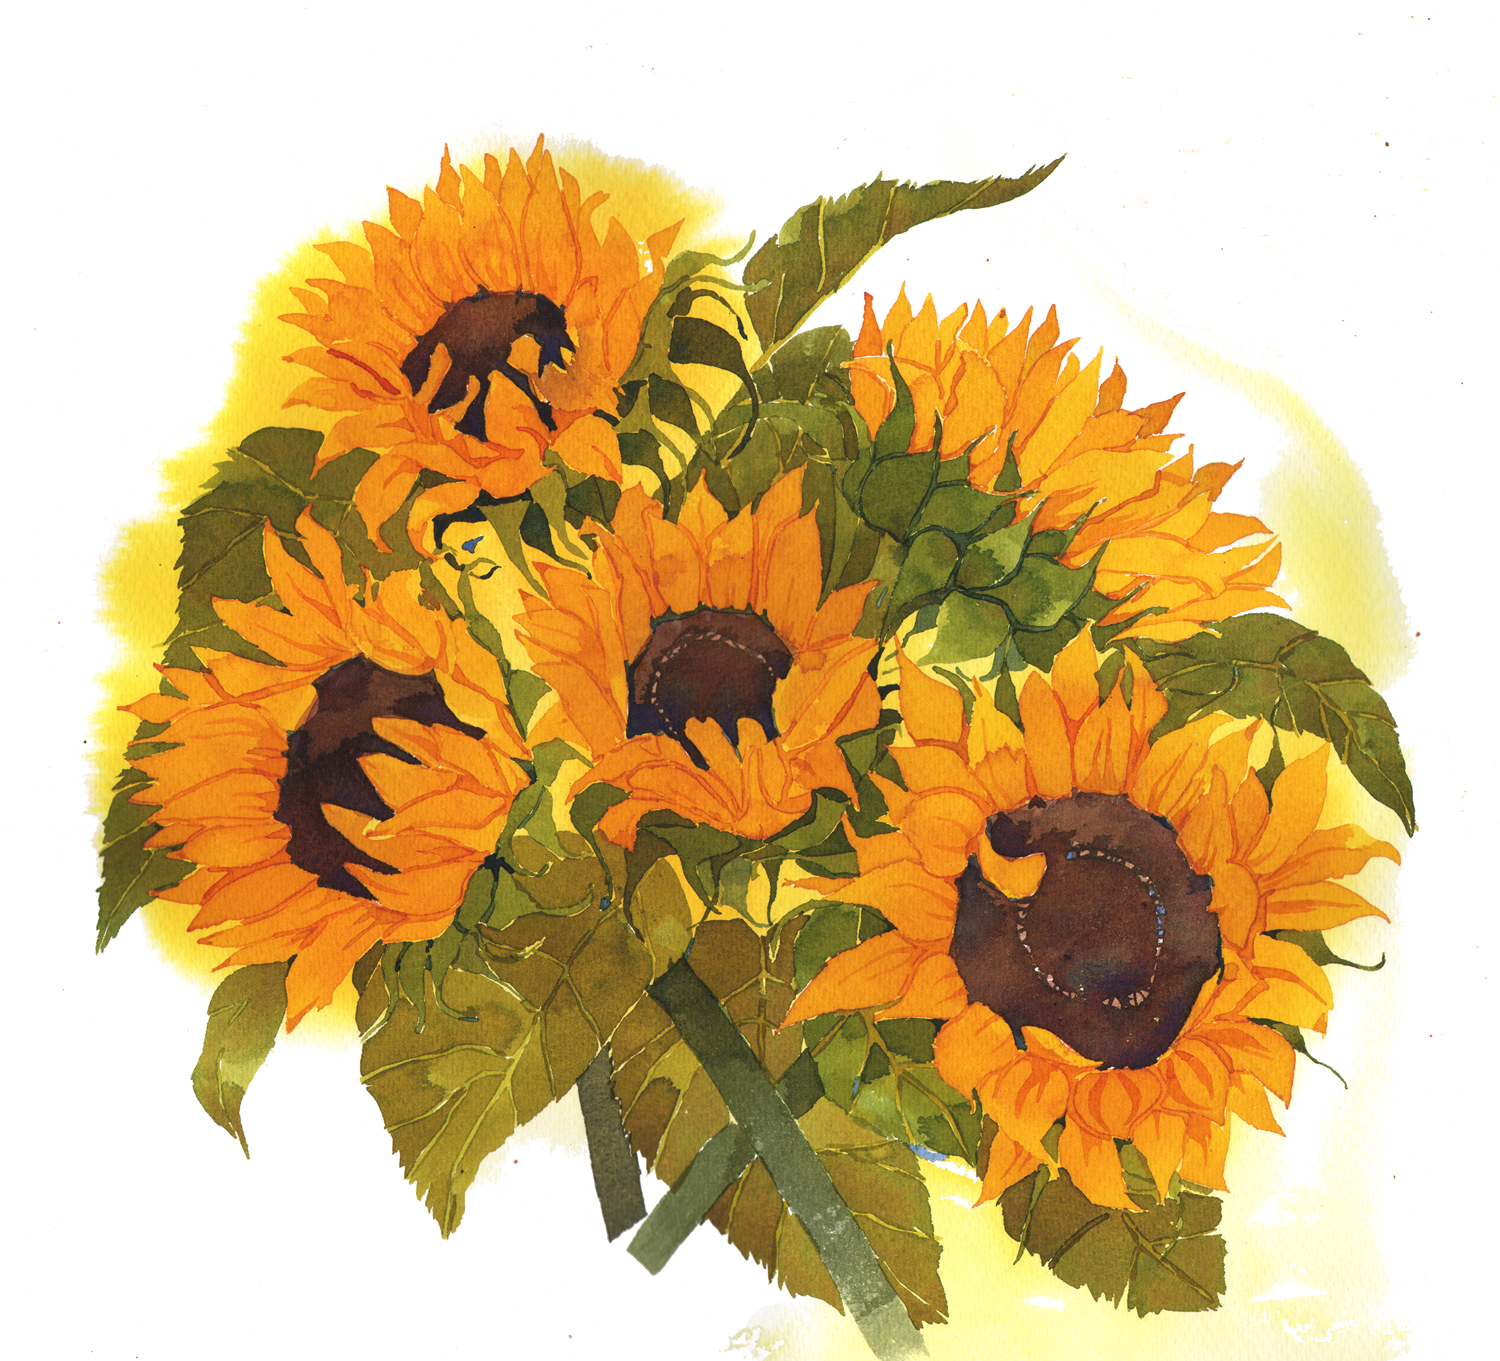 Sunflowers I image